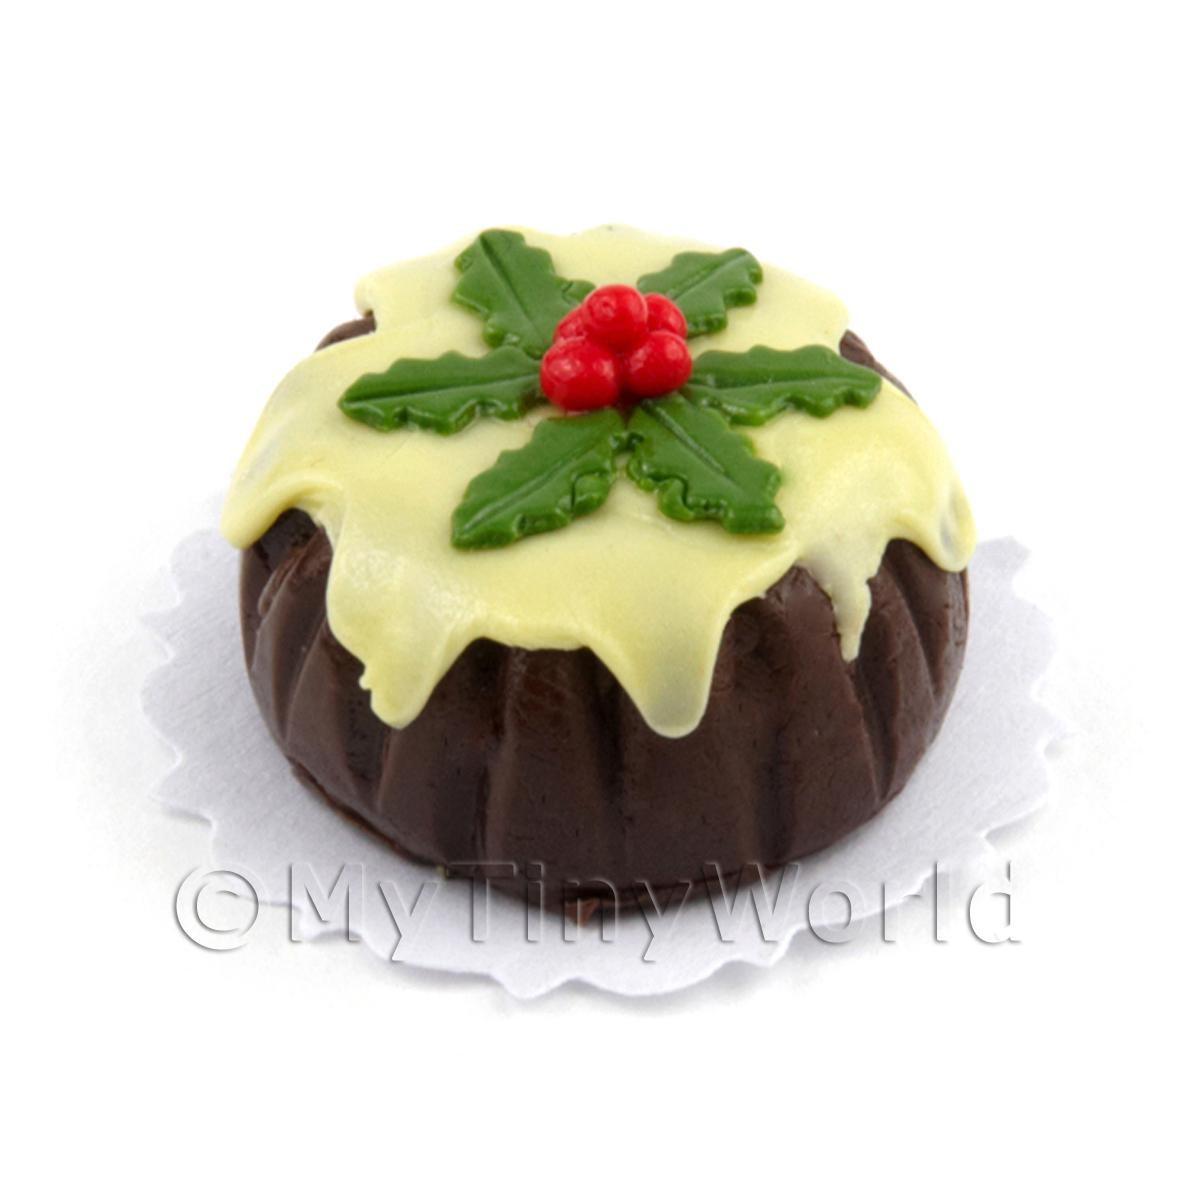 Miniature Chocolate Christmas Cake With Iced Top